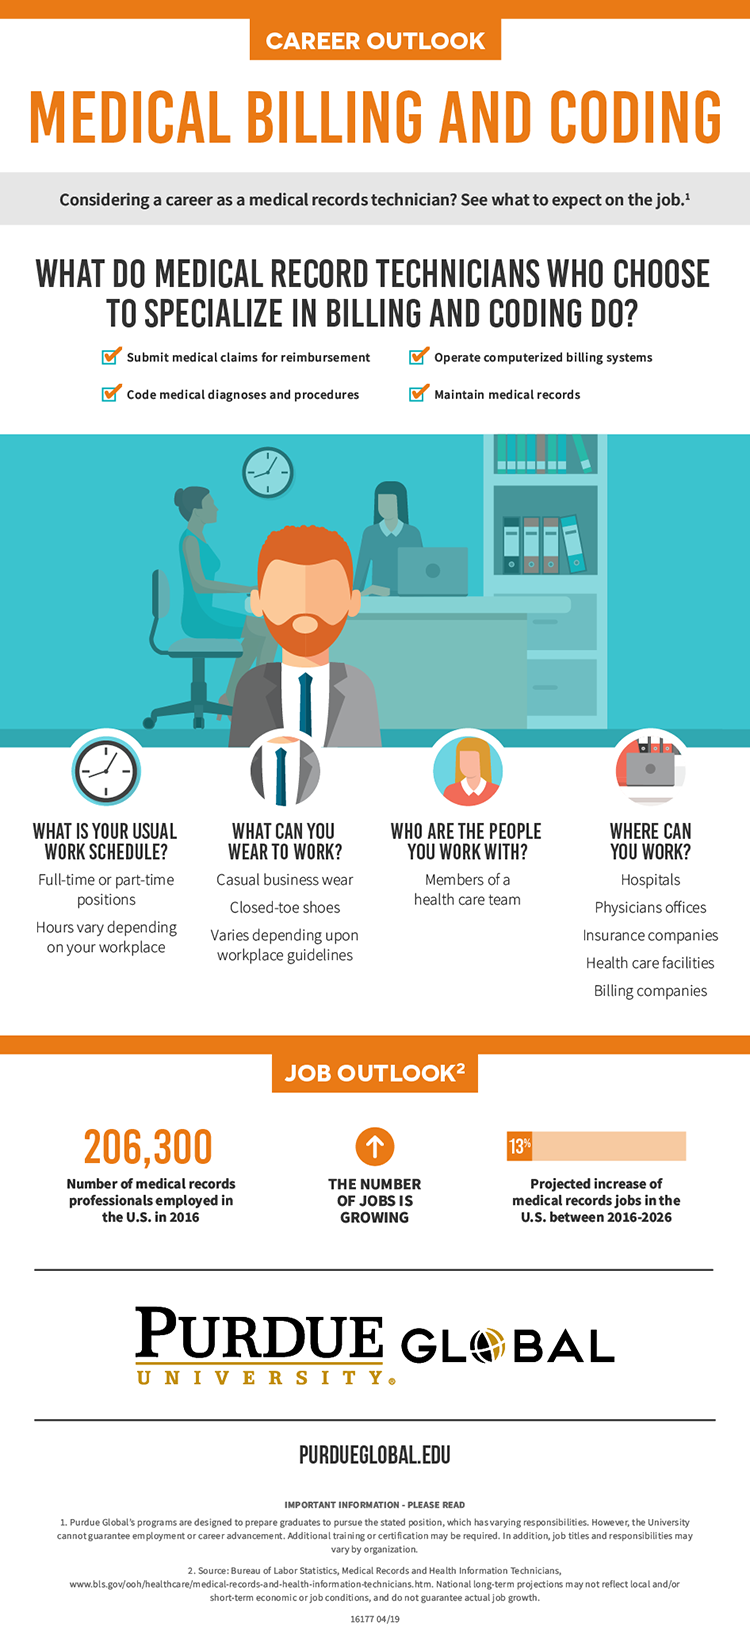 An infographic describing what it's like to have a medical billing and coding career. Information in infographic is included in article above.